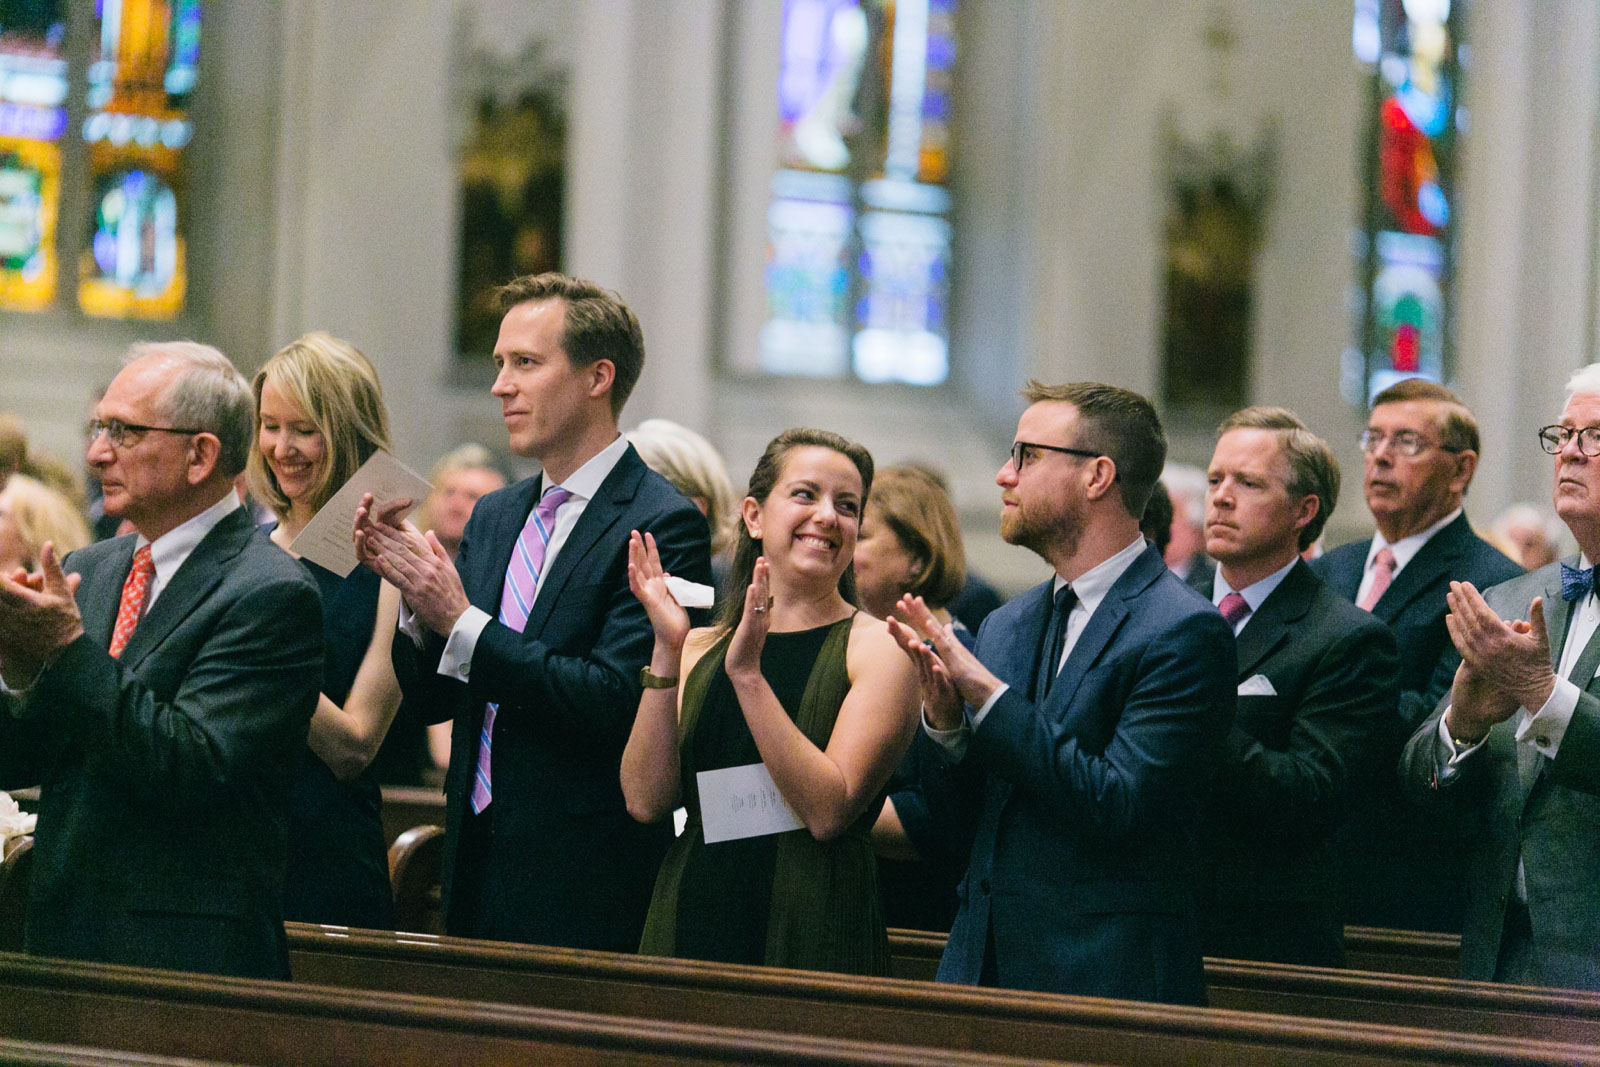 wedding guests clap and cheer as bride and groom share their first kiss at church wedding in boston